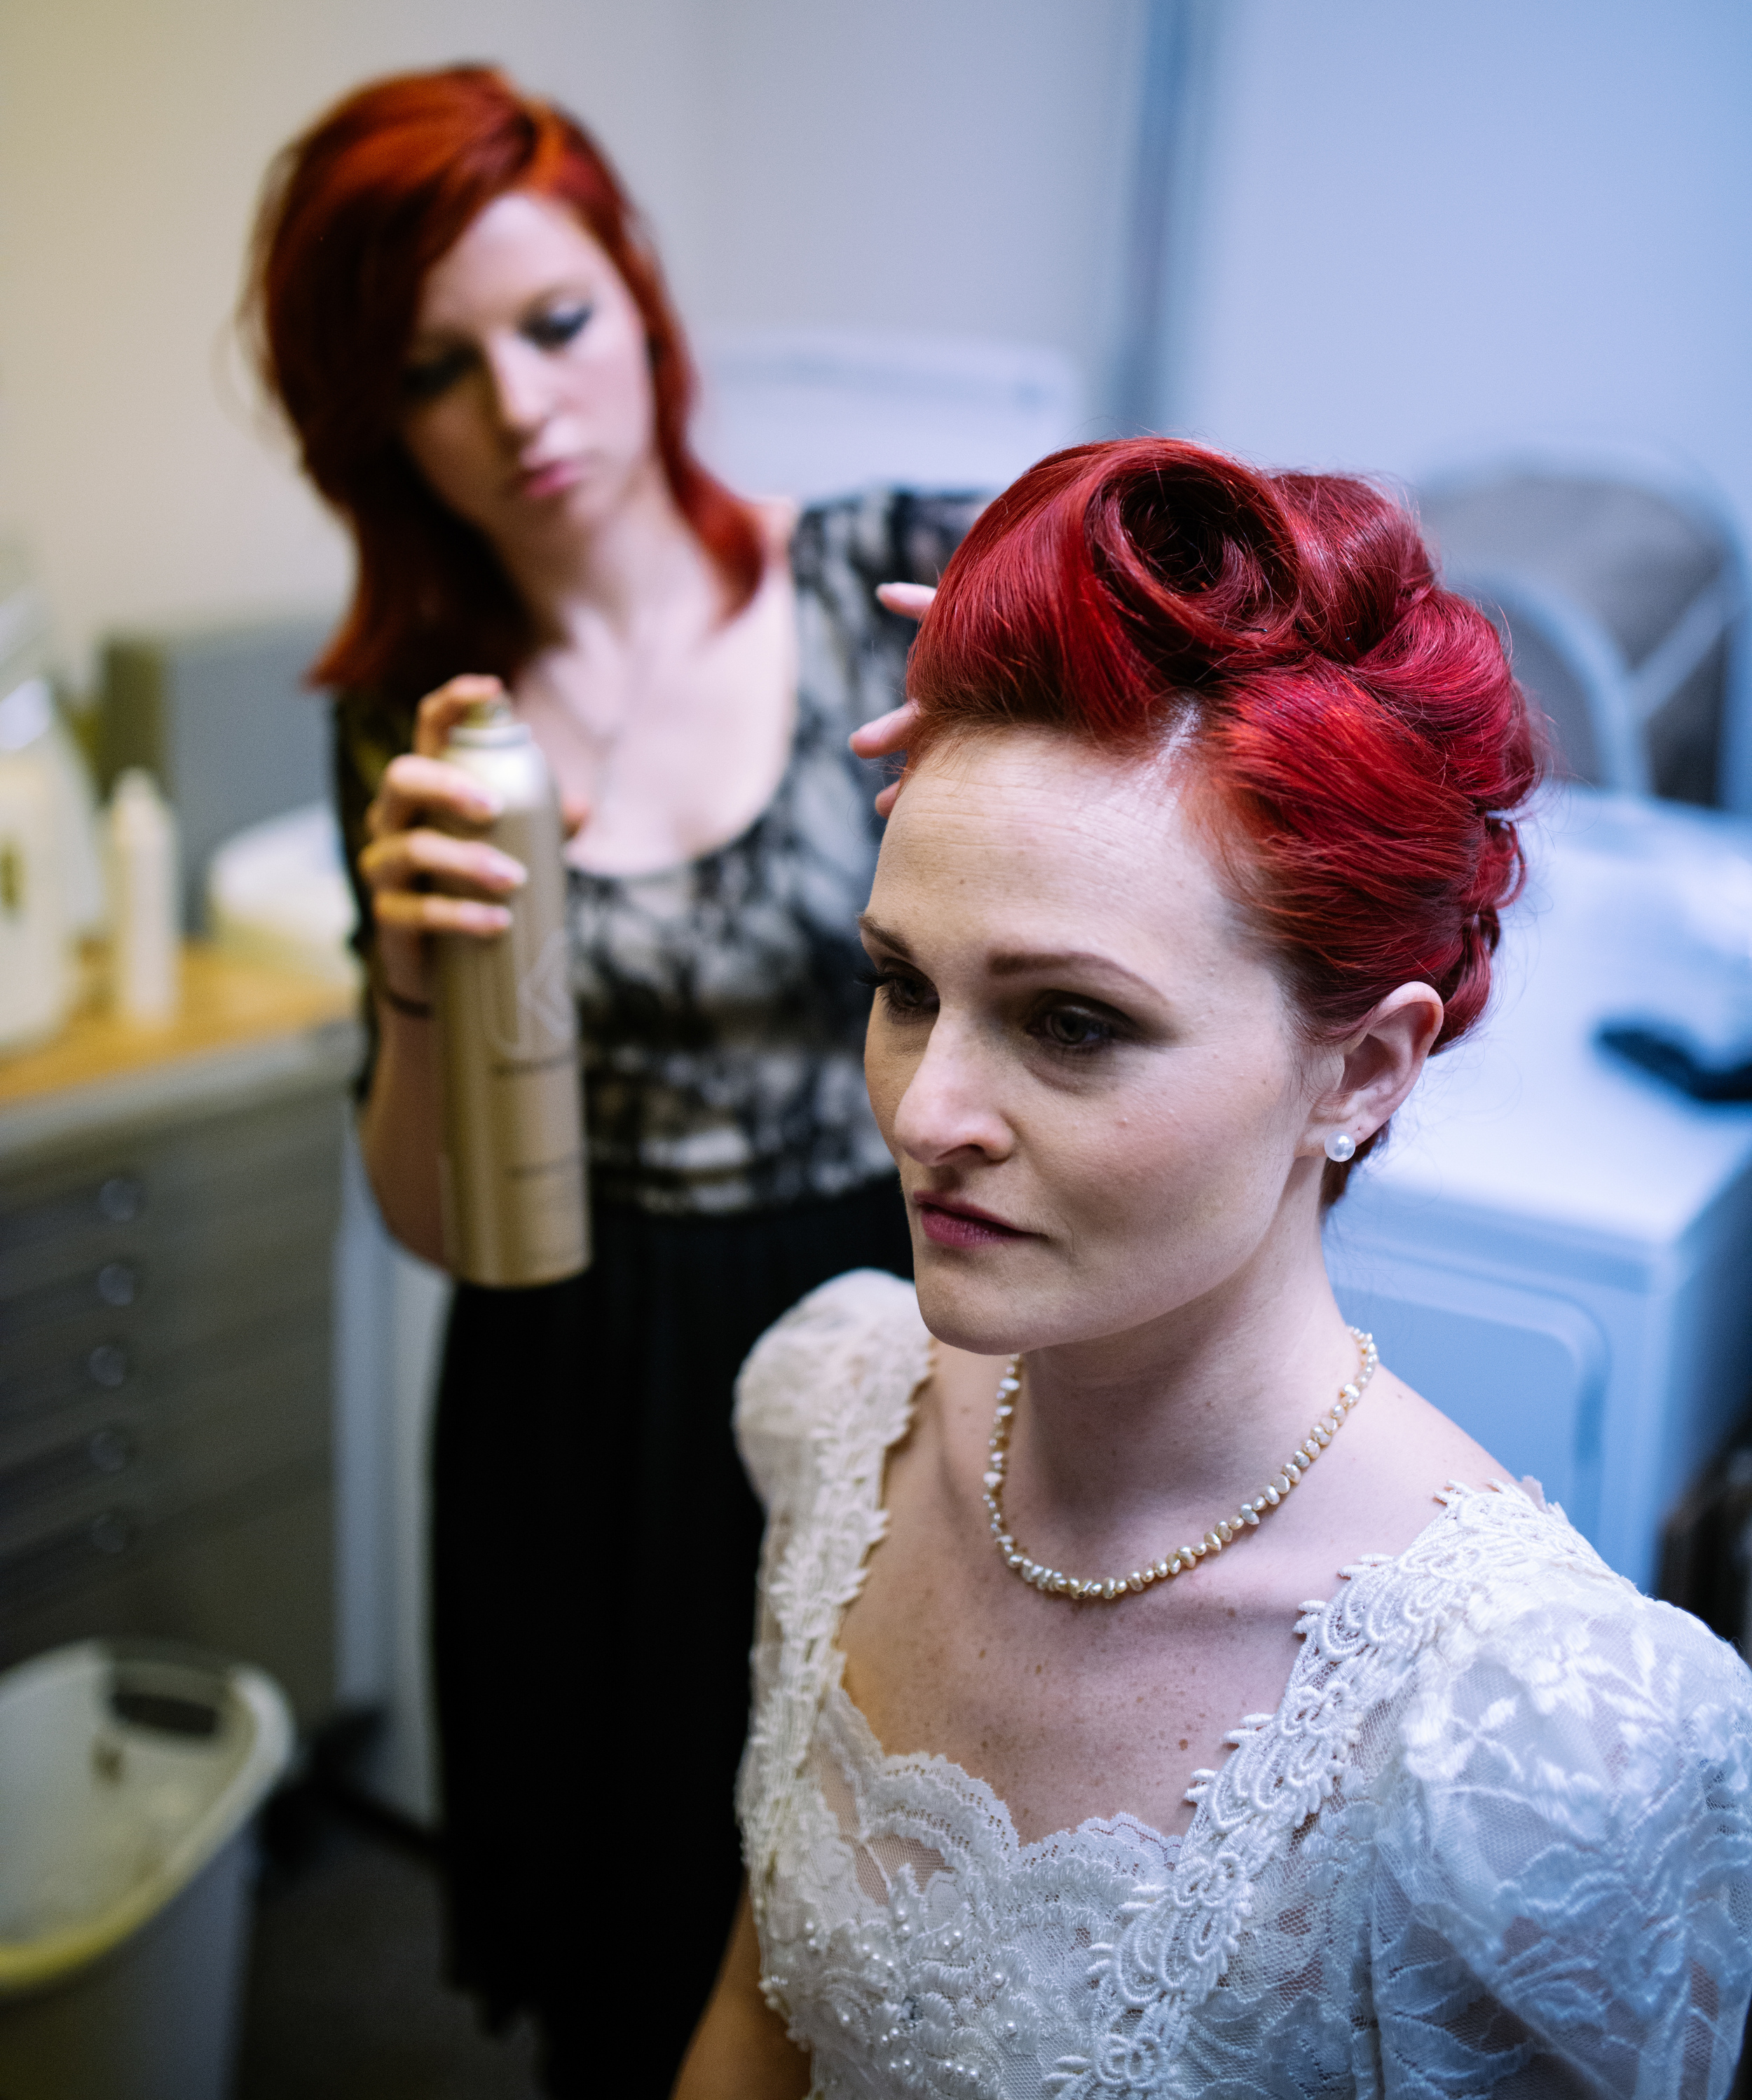 Erin Marshall gets her hair done in preparation for the fashion show at Bloomington Royale Hair Parlor, March 8th, 2014.